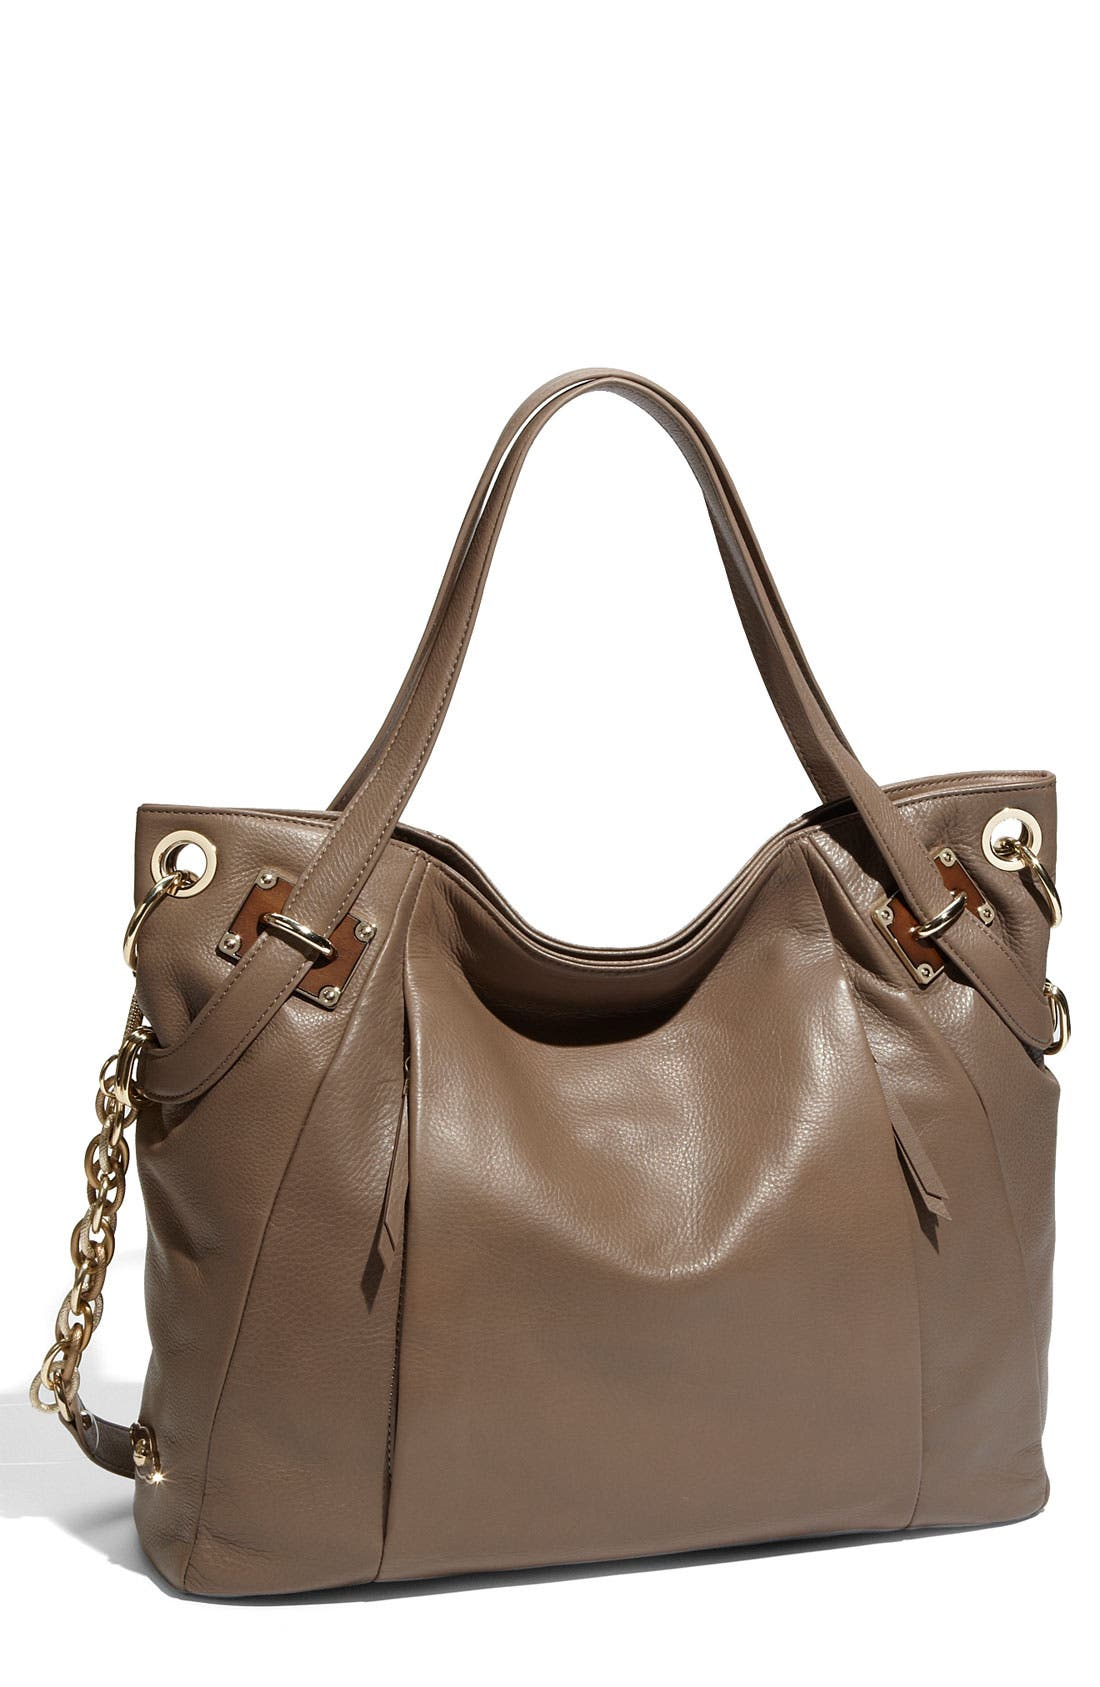 Alternate Image 1 Selected - Elliott Lucca 'Cordoba - Large' Convertible Tote